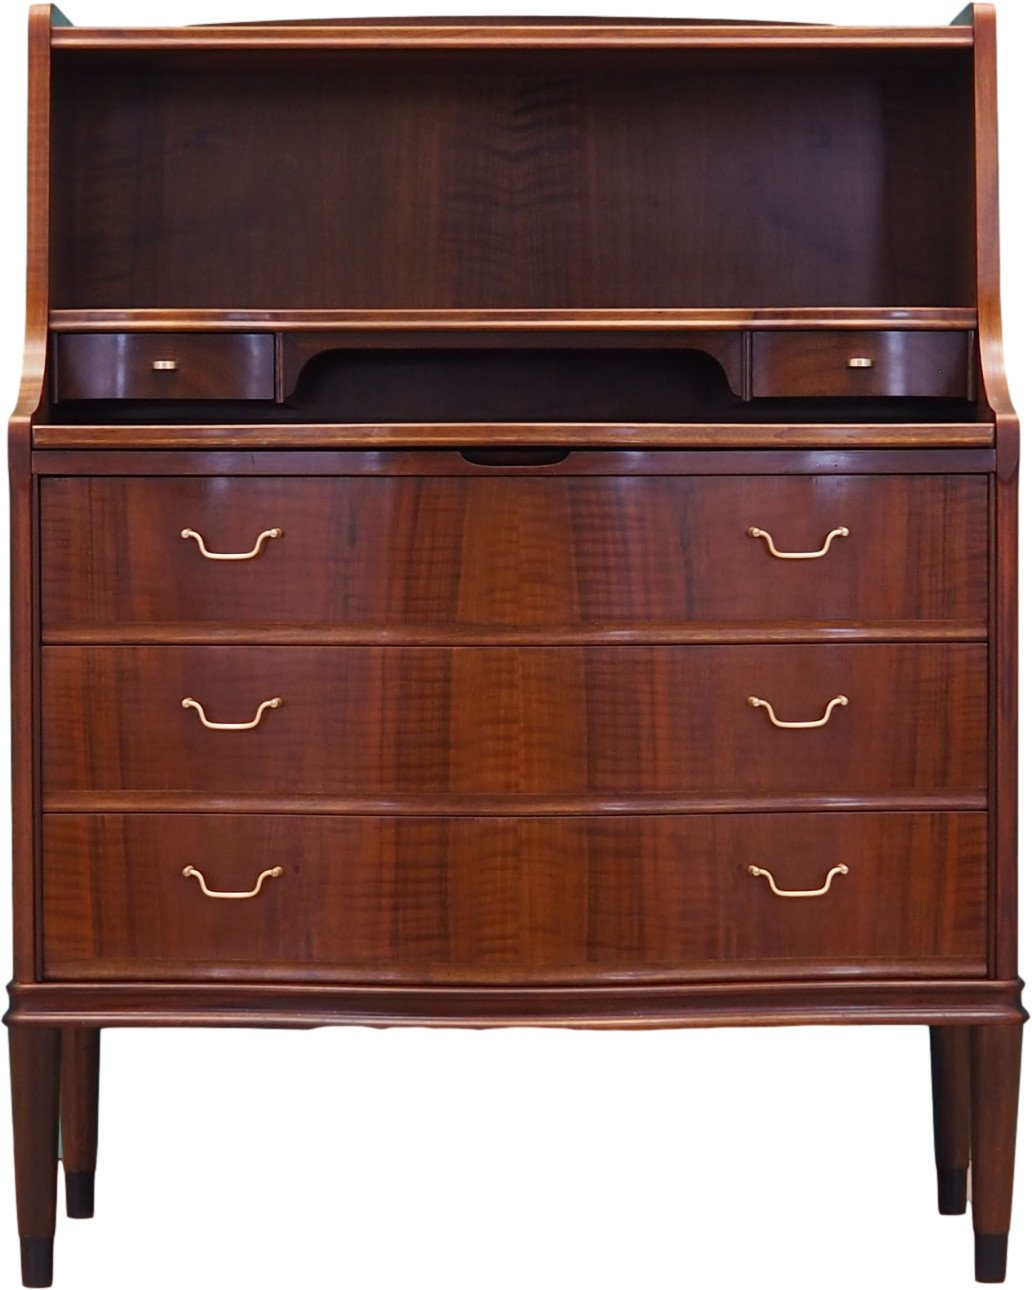 Secretary Desk, Denmark, 1960s